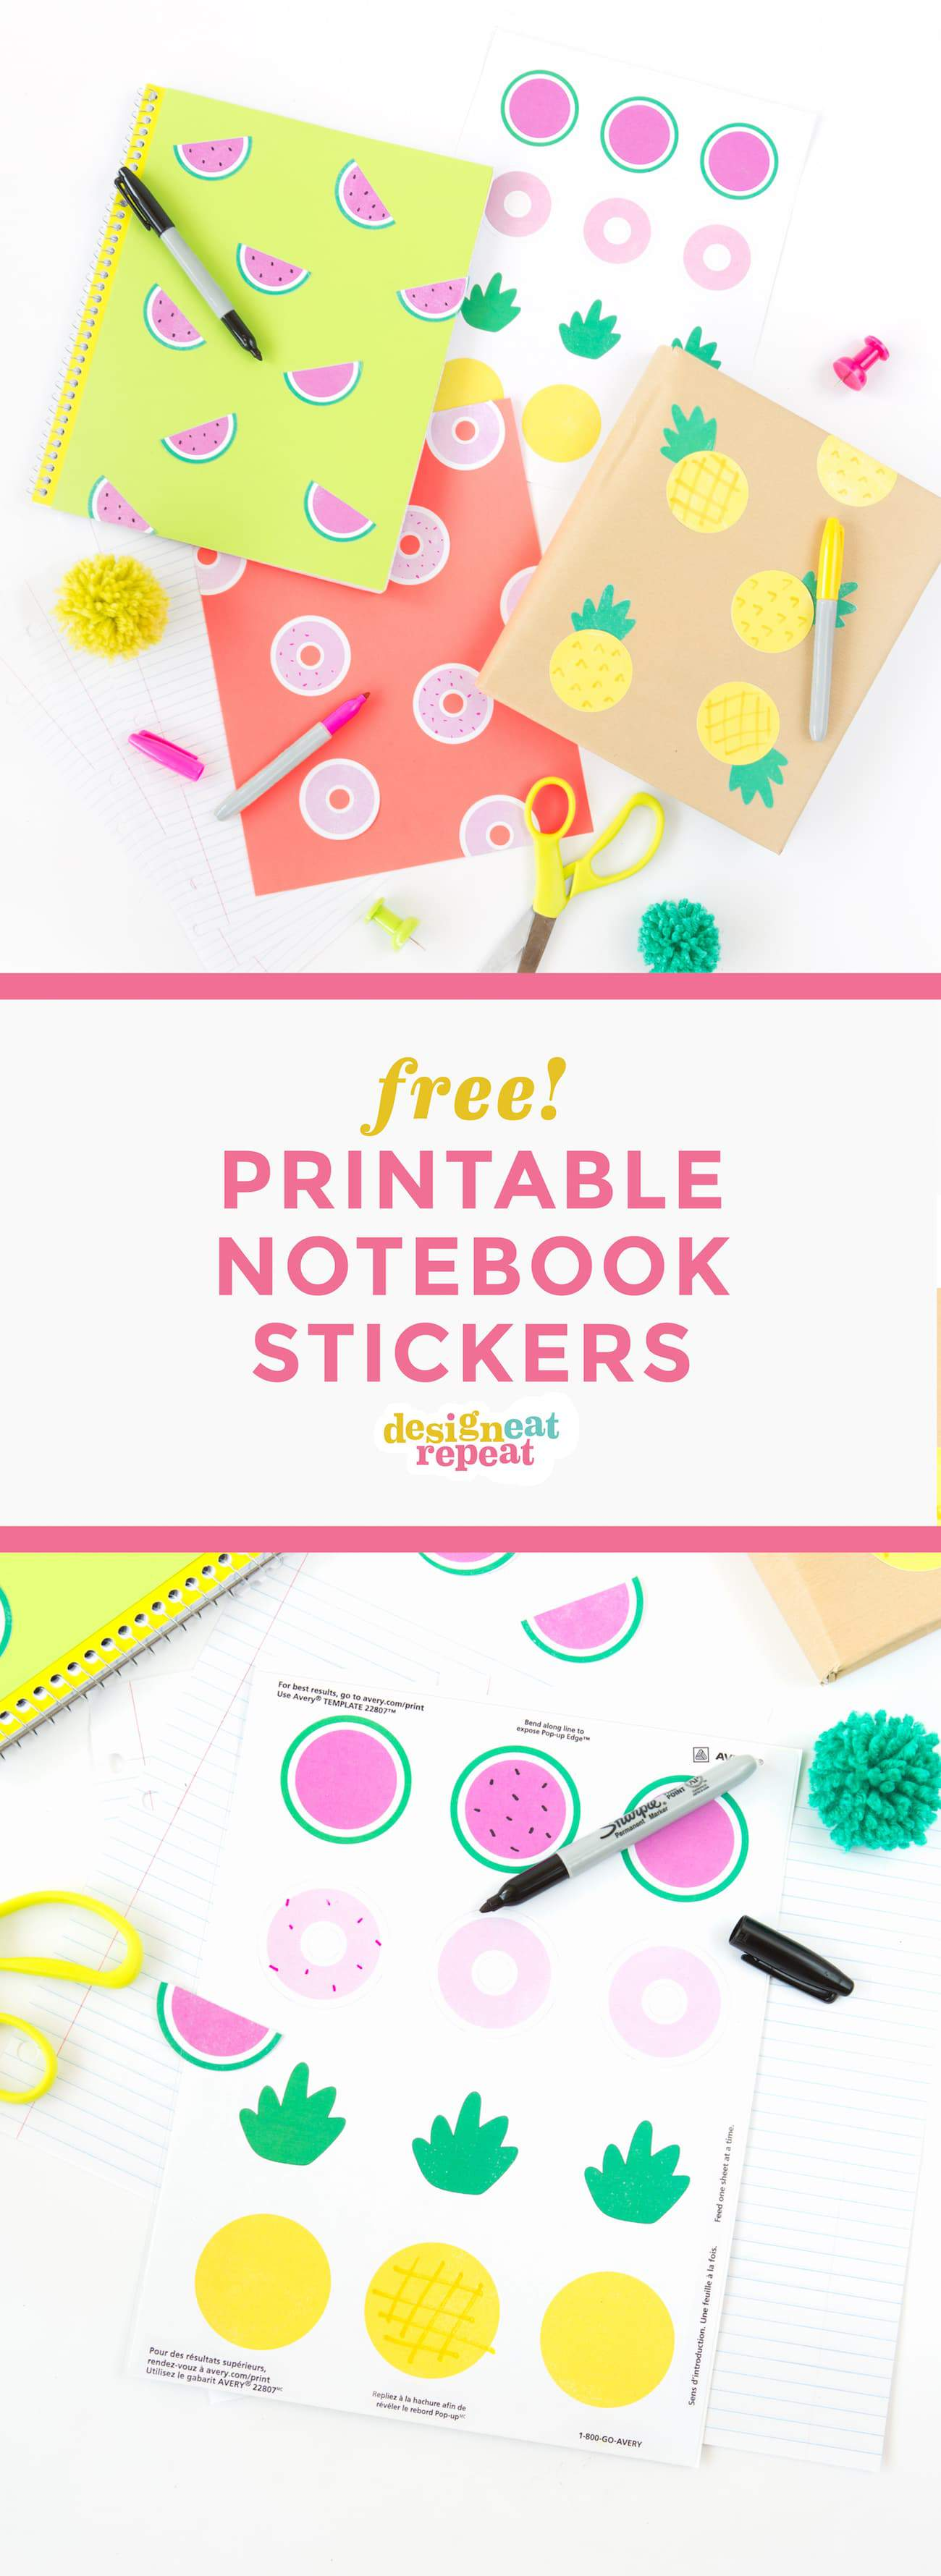 cute printable notebook stickers design eat repeat